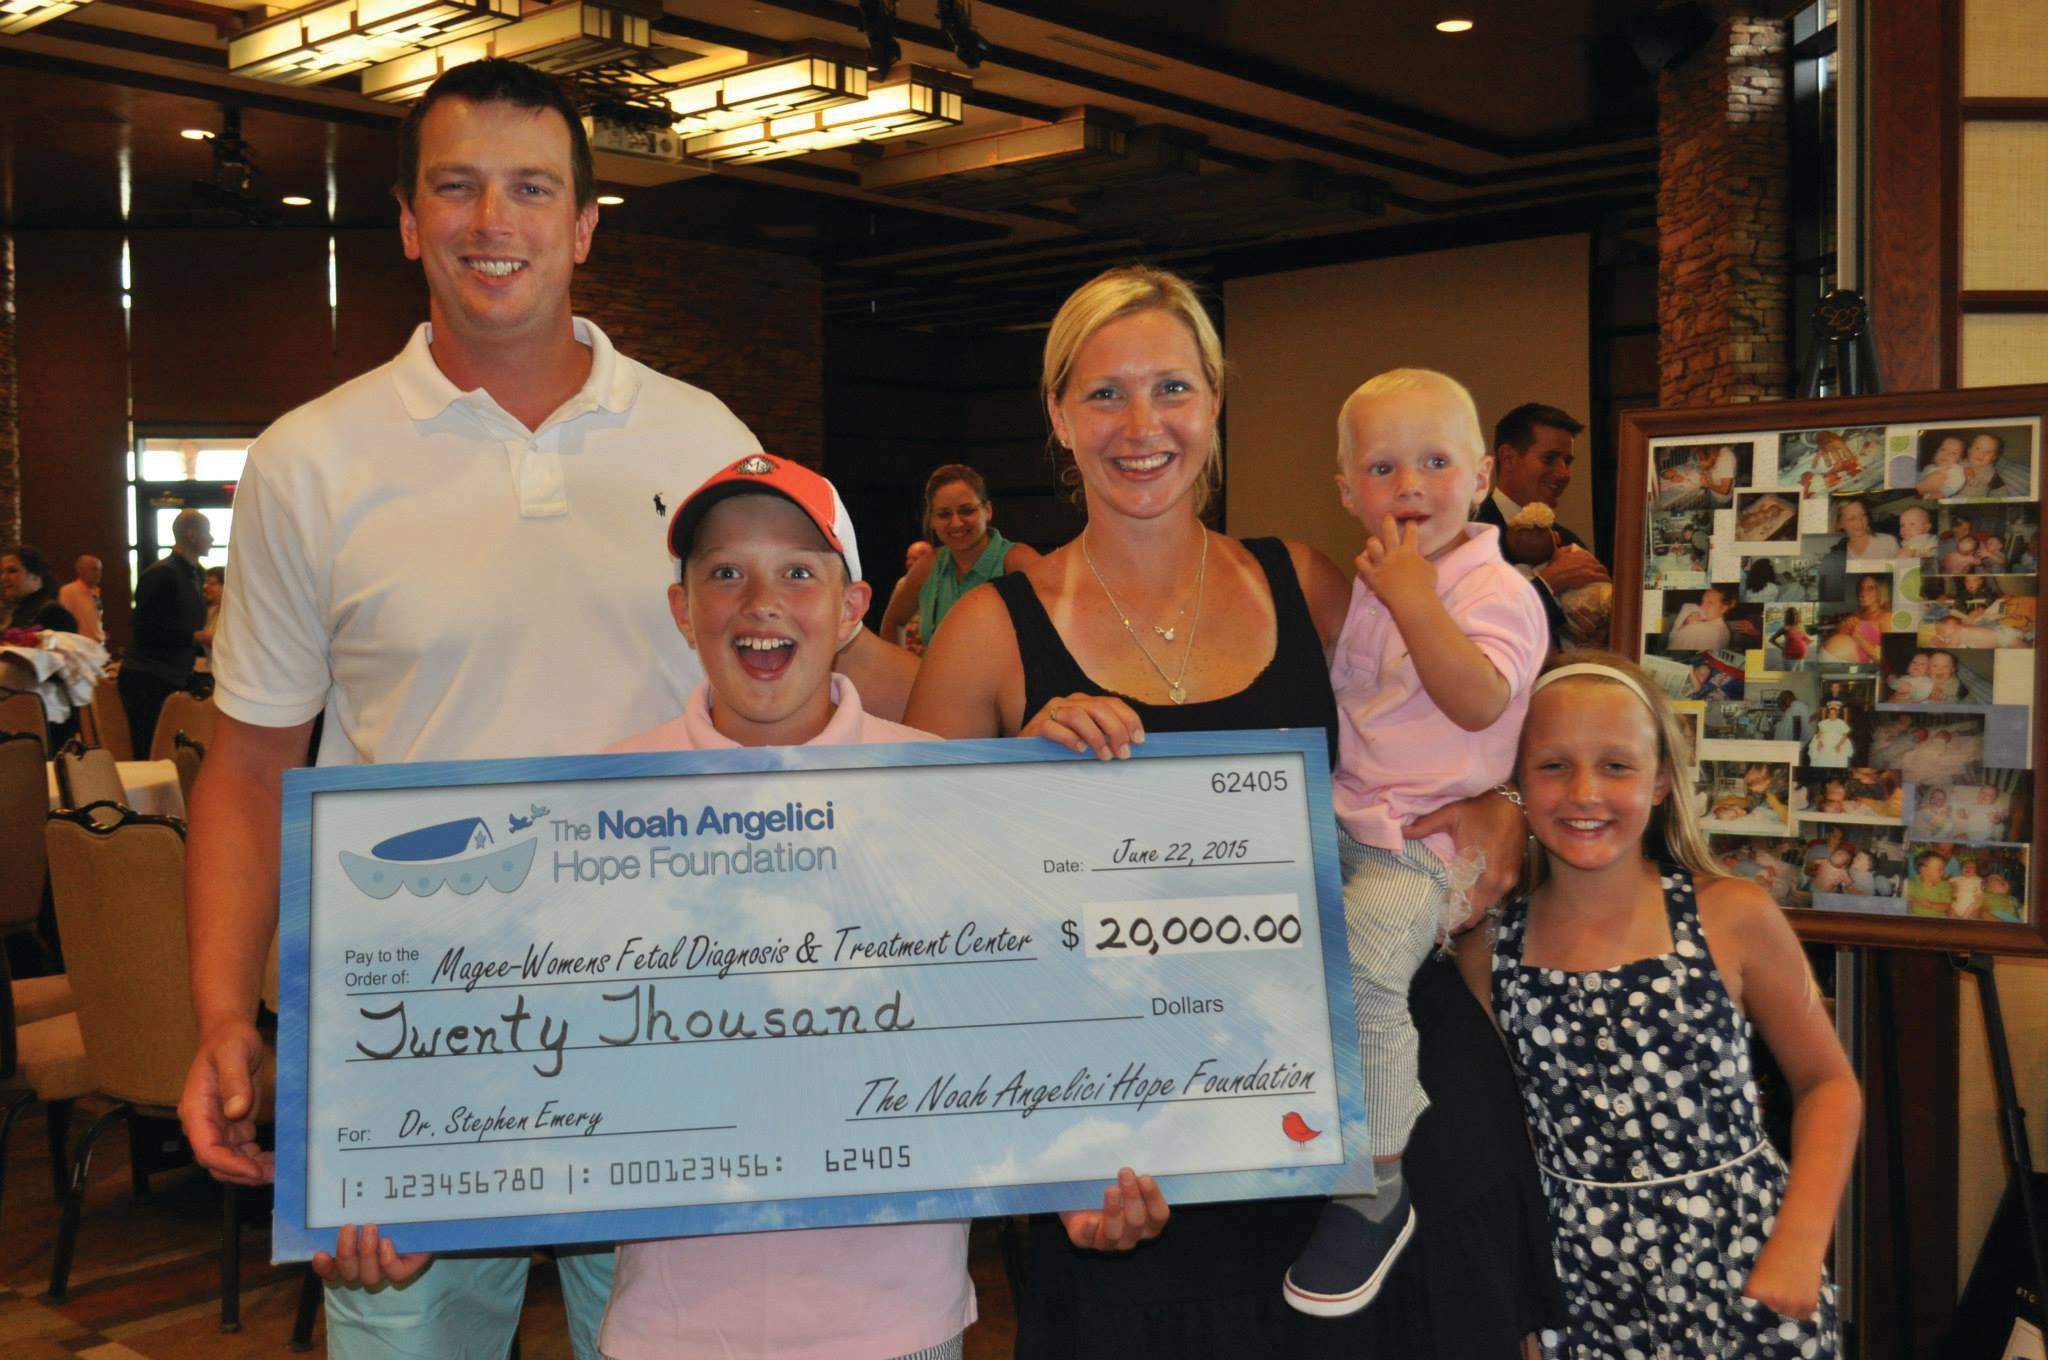 Noah Angelici Hope Foundation 13th Annual Golf Event